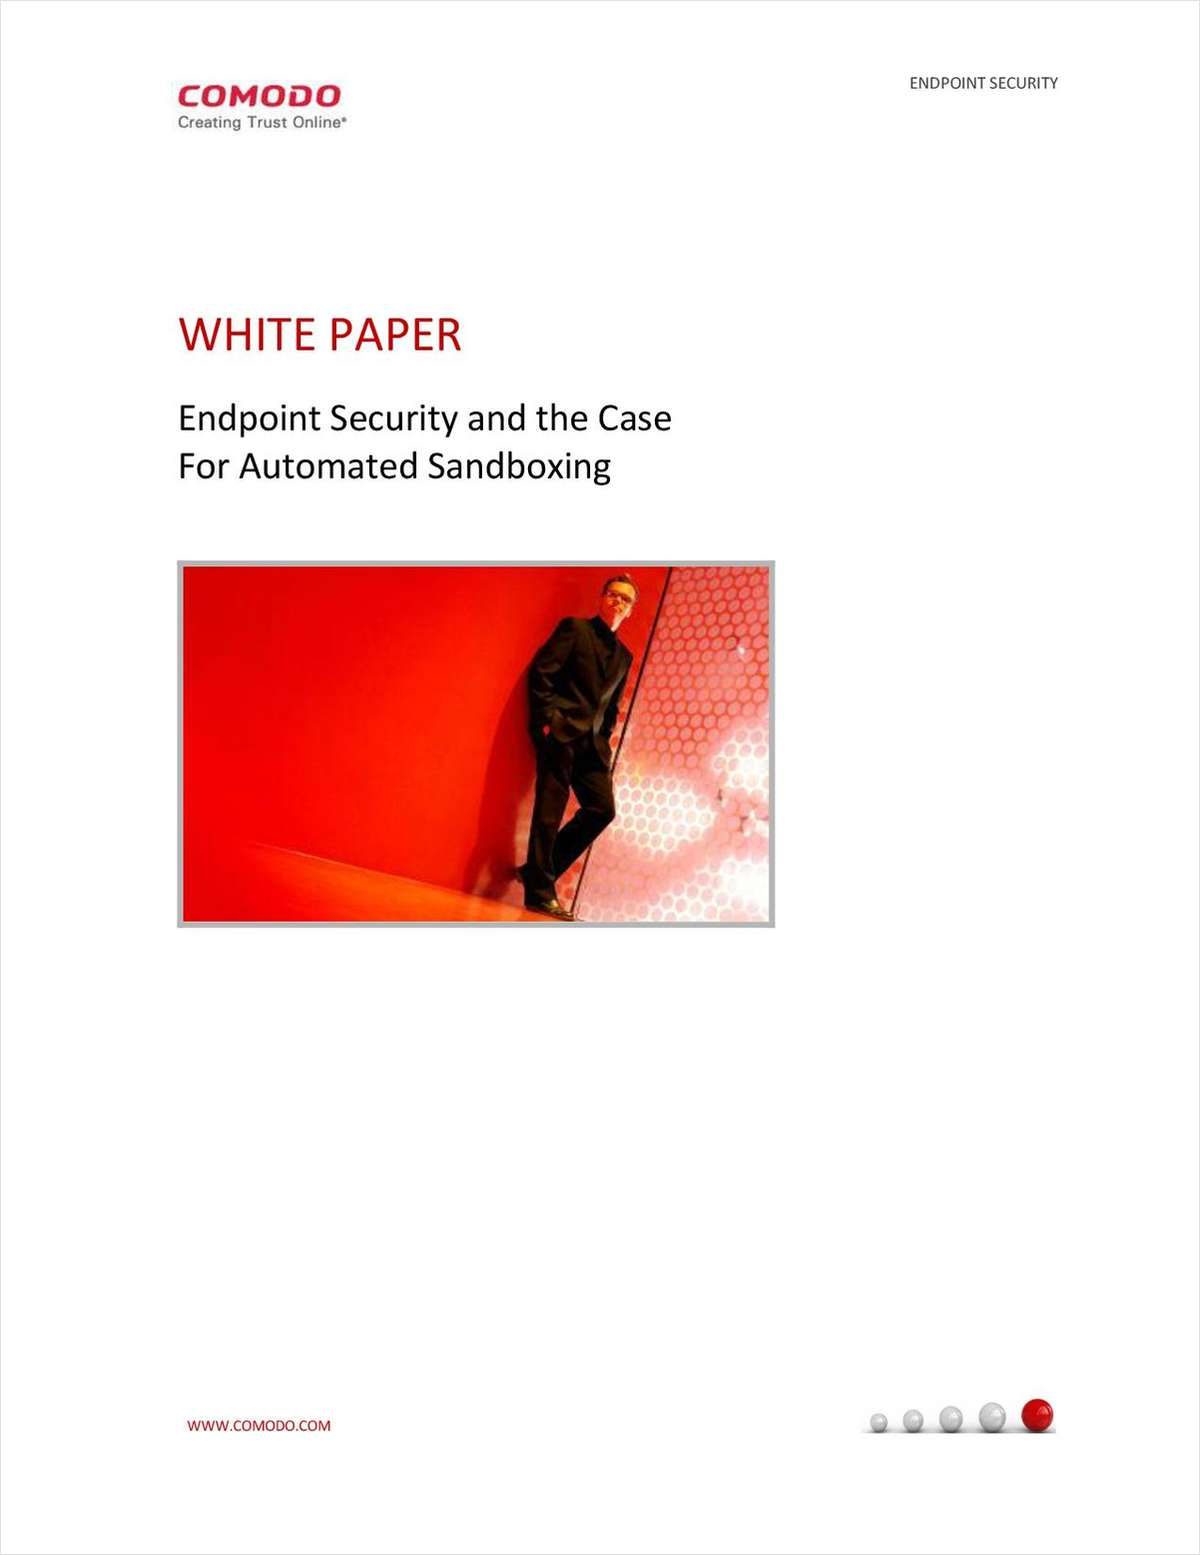 Endpoint Security and Auto-Sandboxing